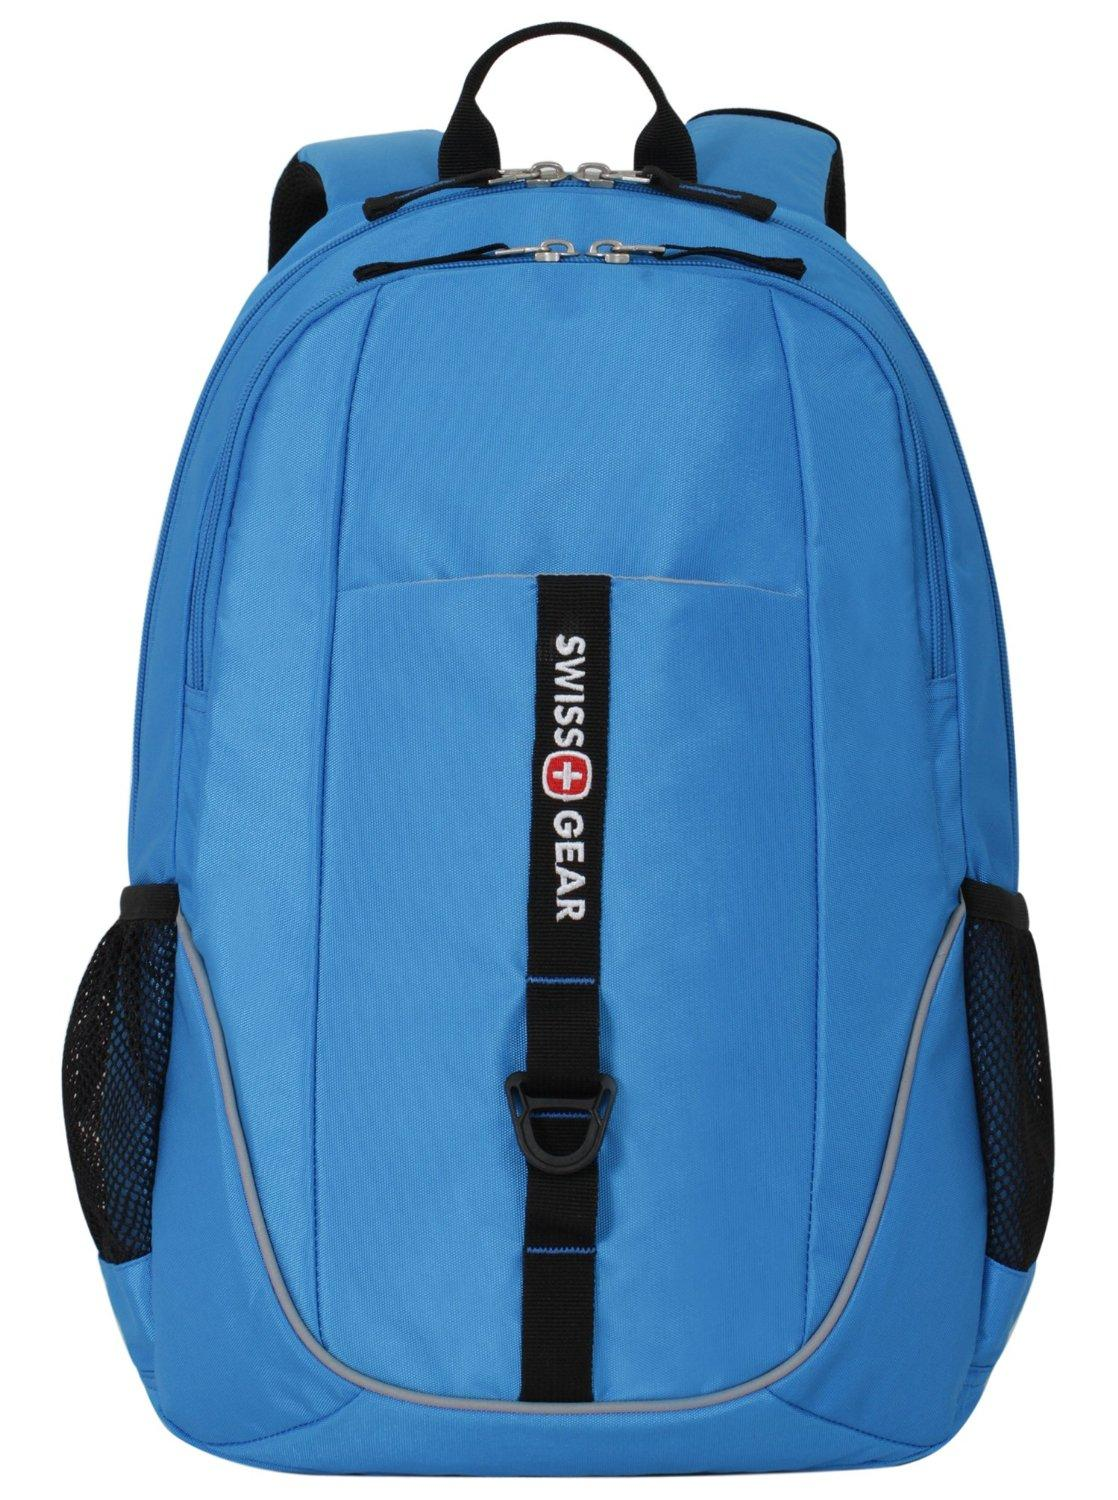 SwissGear Laptop Computer Backpack SA6639 (Neon Blue) Fits Most 15 Inch Laptops